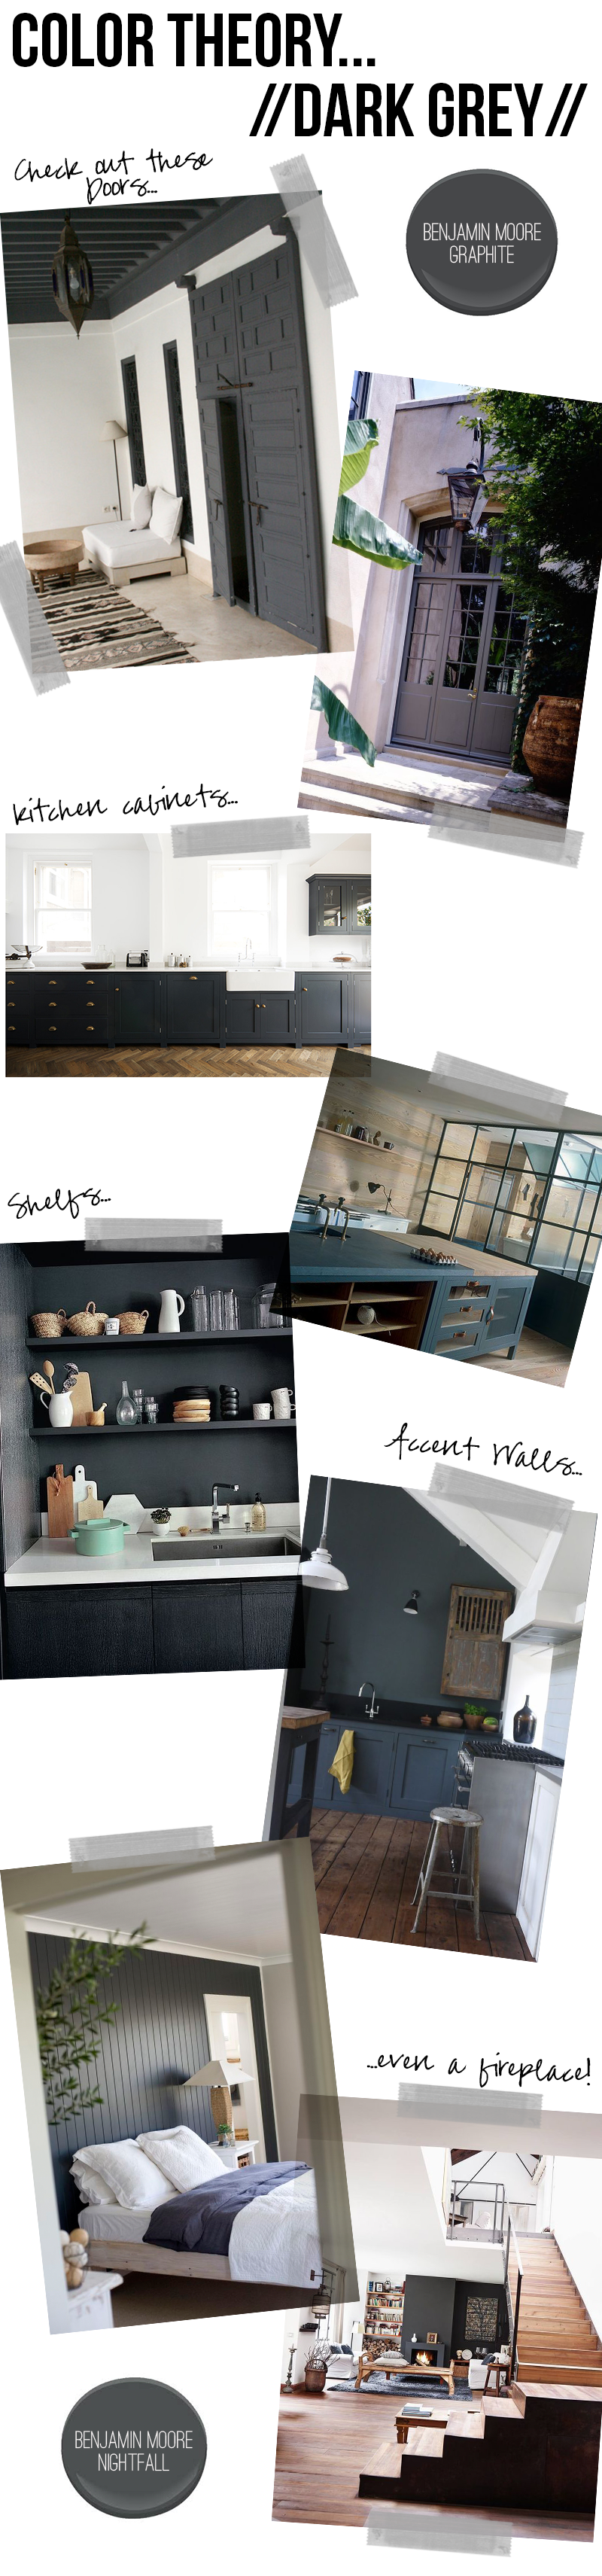 Color theory dark grey amber interiors